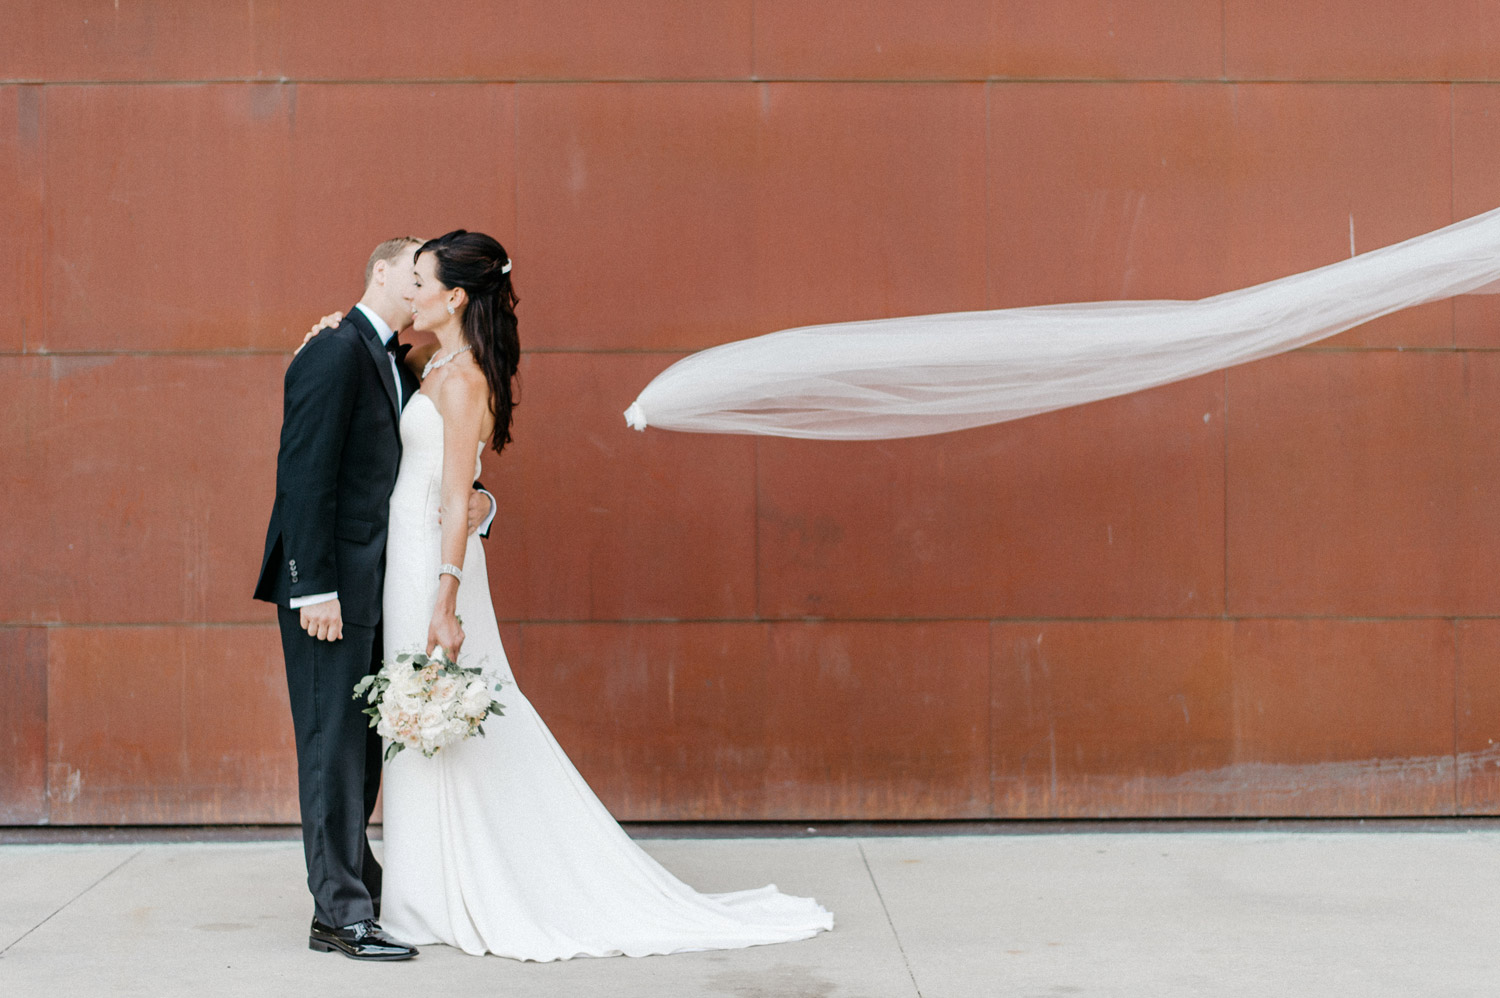 Rochester Art Center Bride and Groom Portrait by geneoh photography